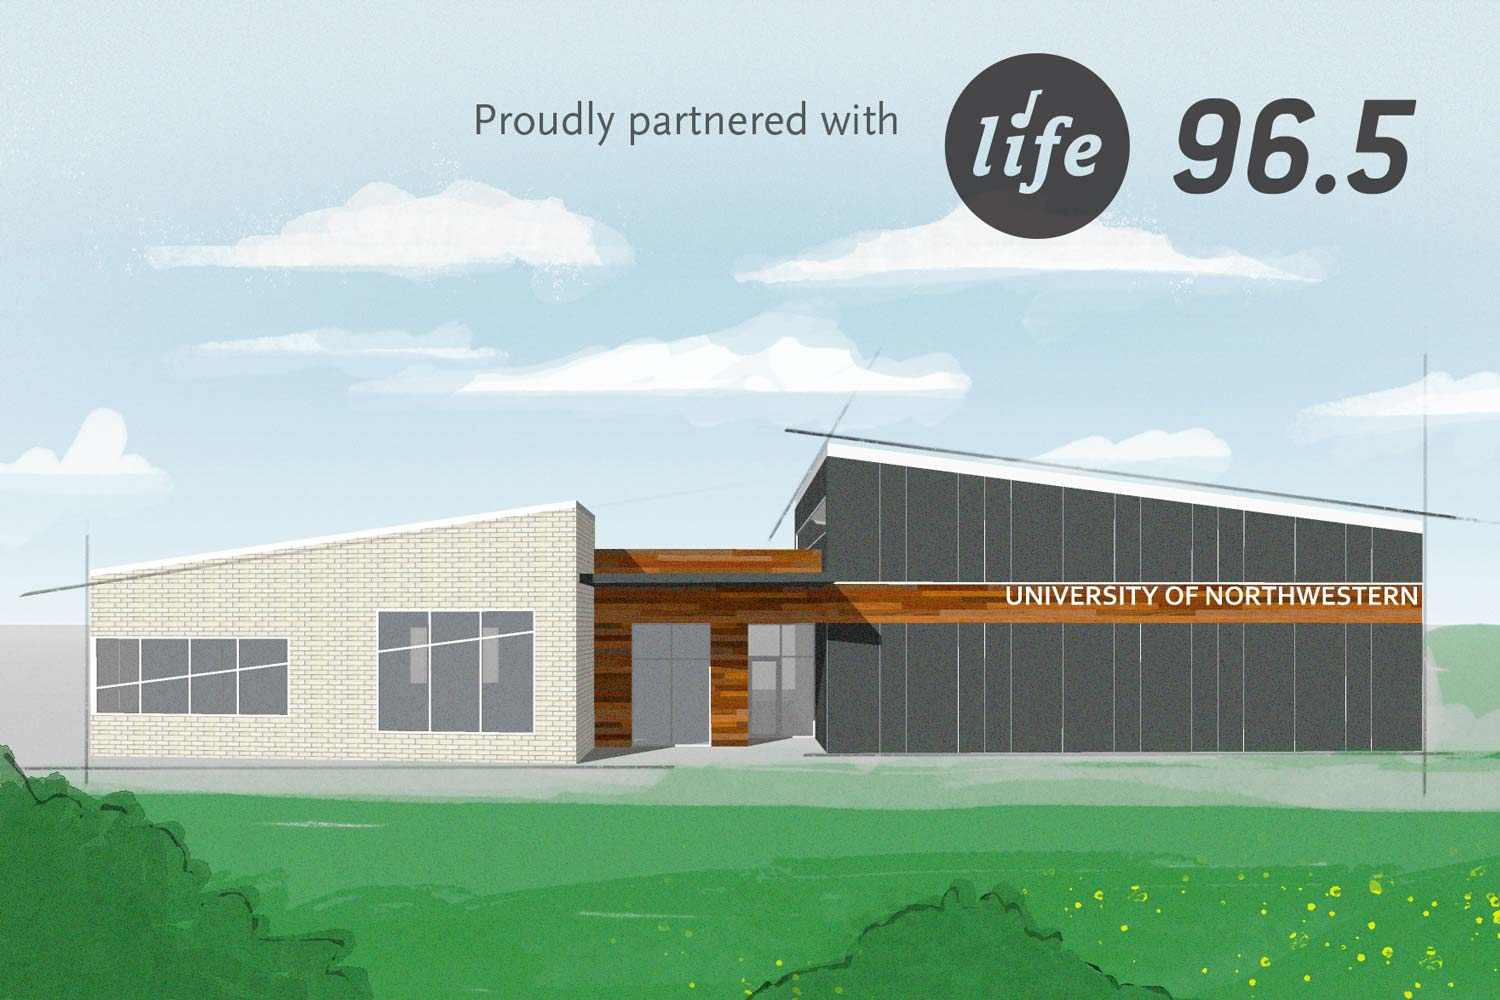 Rendering of Life 96.5 radio station with the University of Northwestern education wing